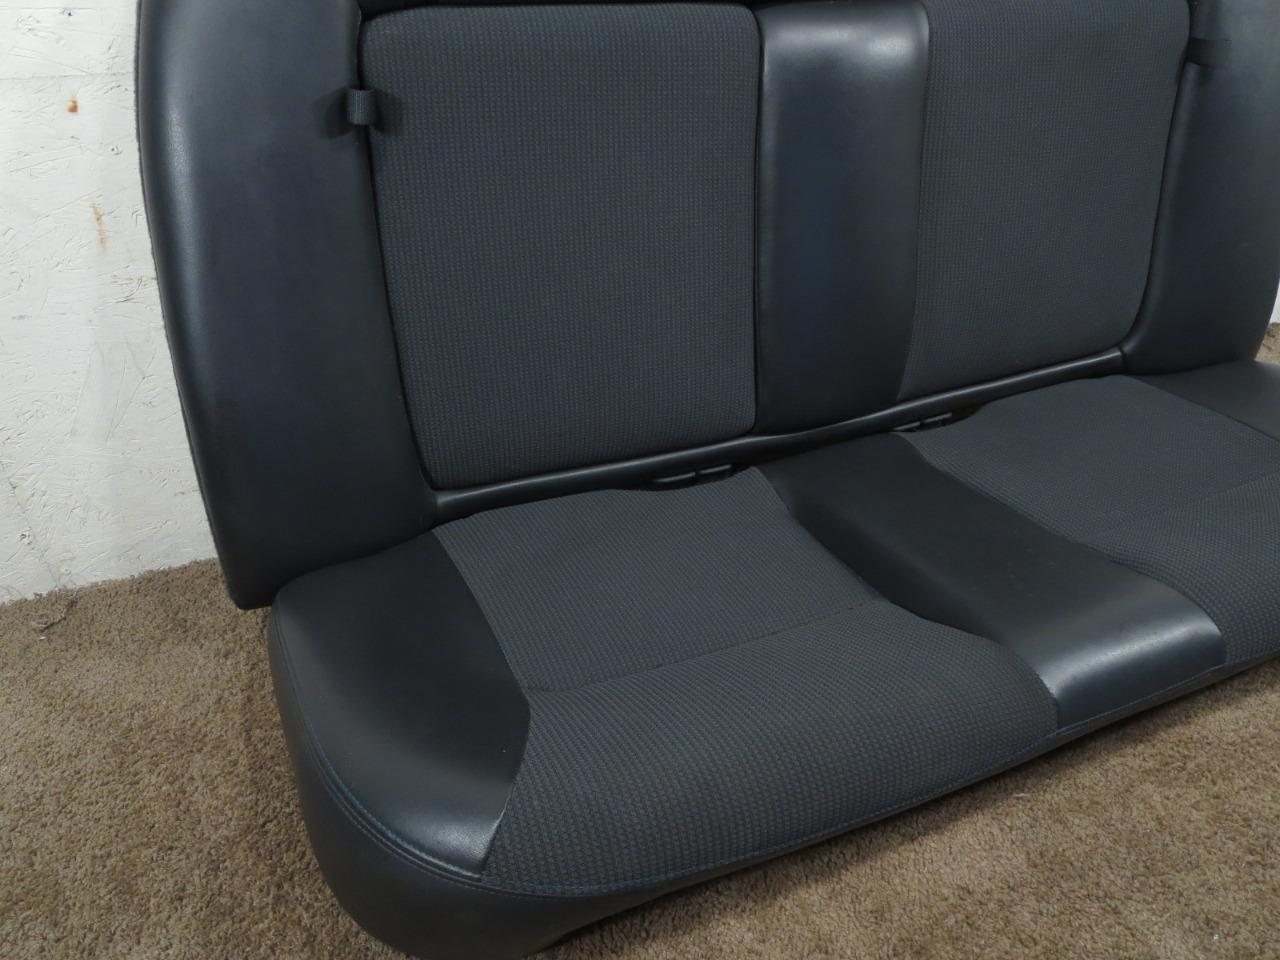 Tremendous Dodge Neon Srt4 Srt 4 Commemorative Edition Rear Seat 2003 2004 2005 Gmtry Best Dining Table And Chair Ideas Images Gmtryco